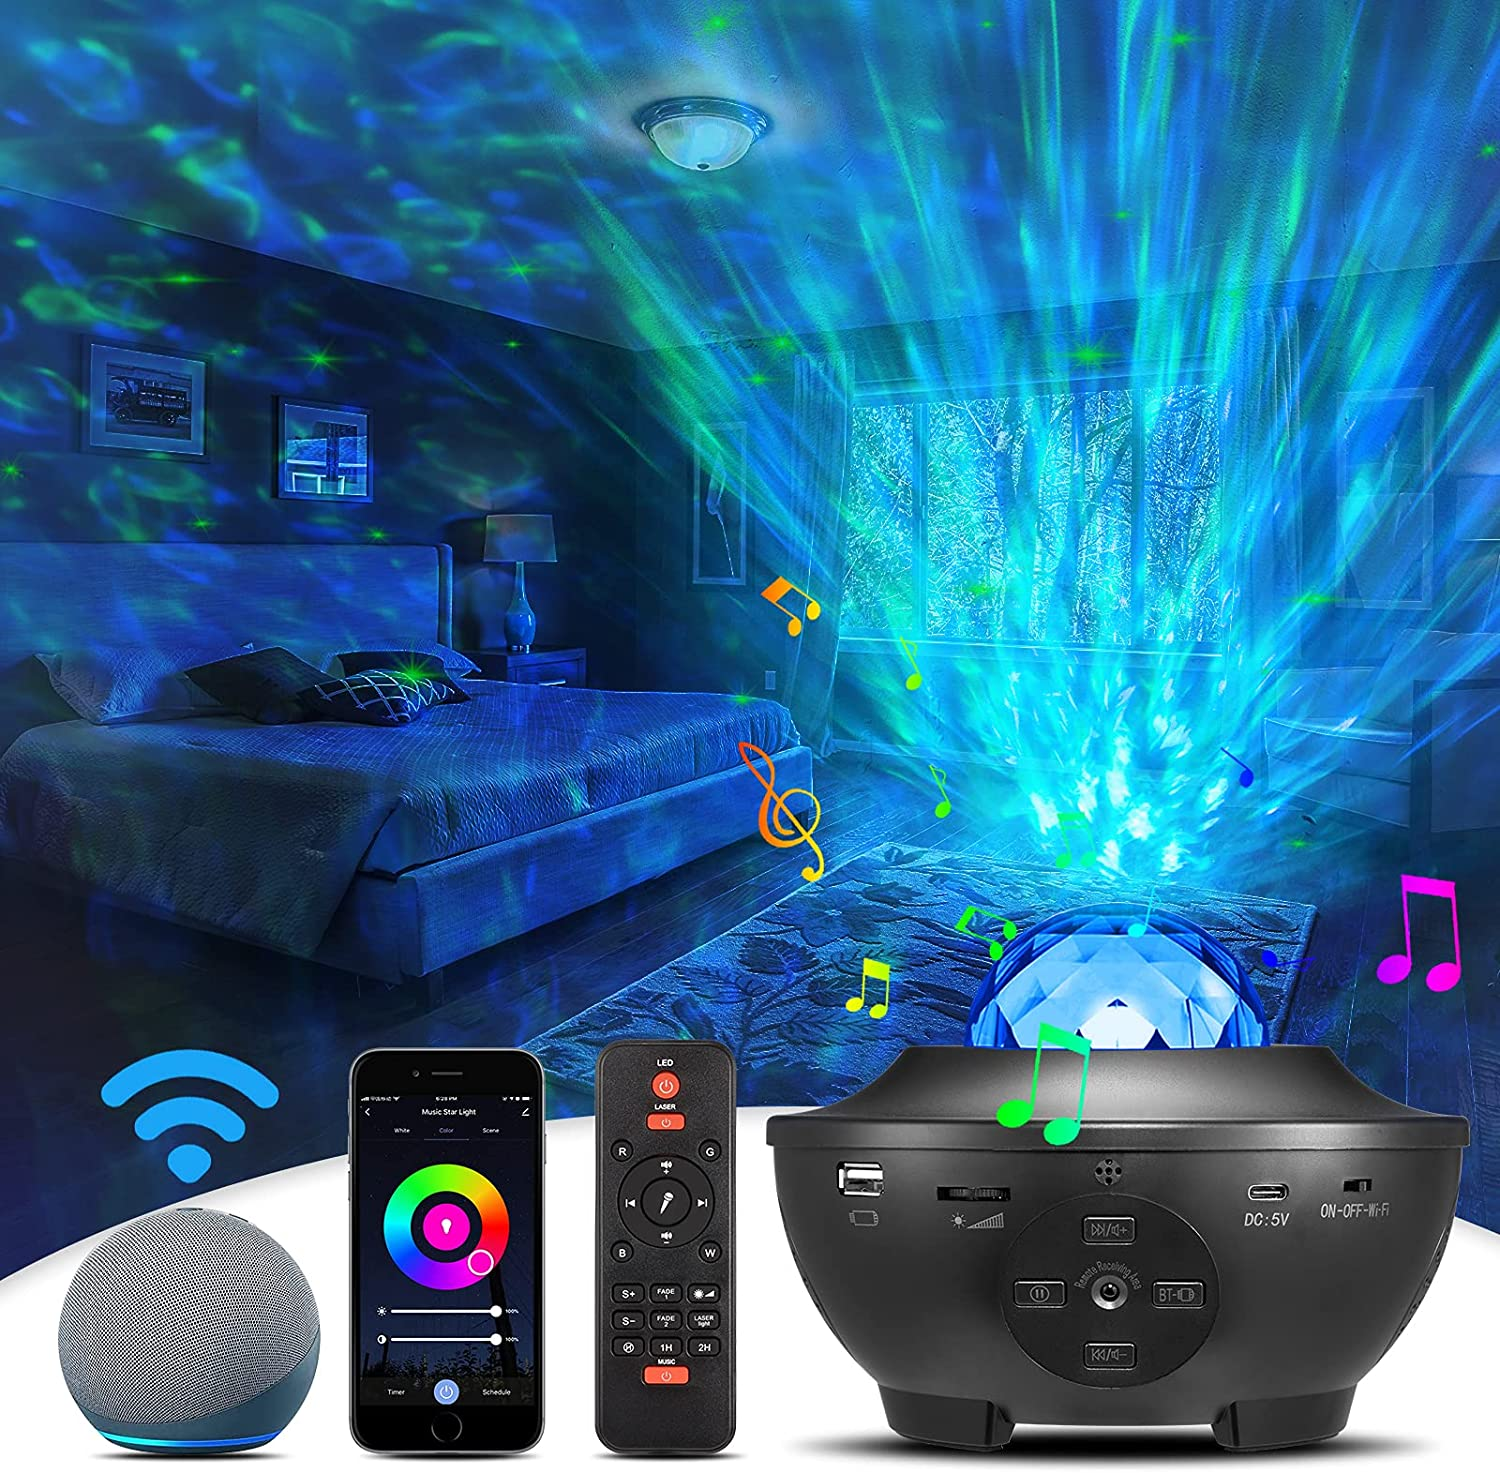 Star Projector, Smart Galaxy Projector Night Light , Starry Decor Light Compatible with Alexa and Google Home,APP and Remote Control Music Skylight Projector for Bedroom Party, Build in Speaker